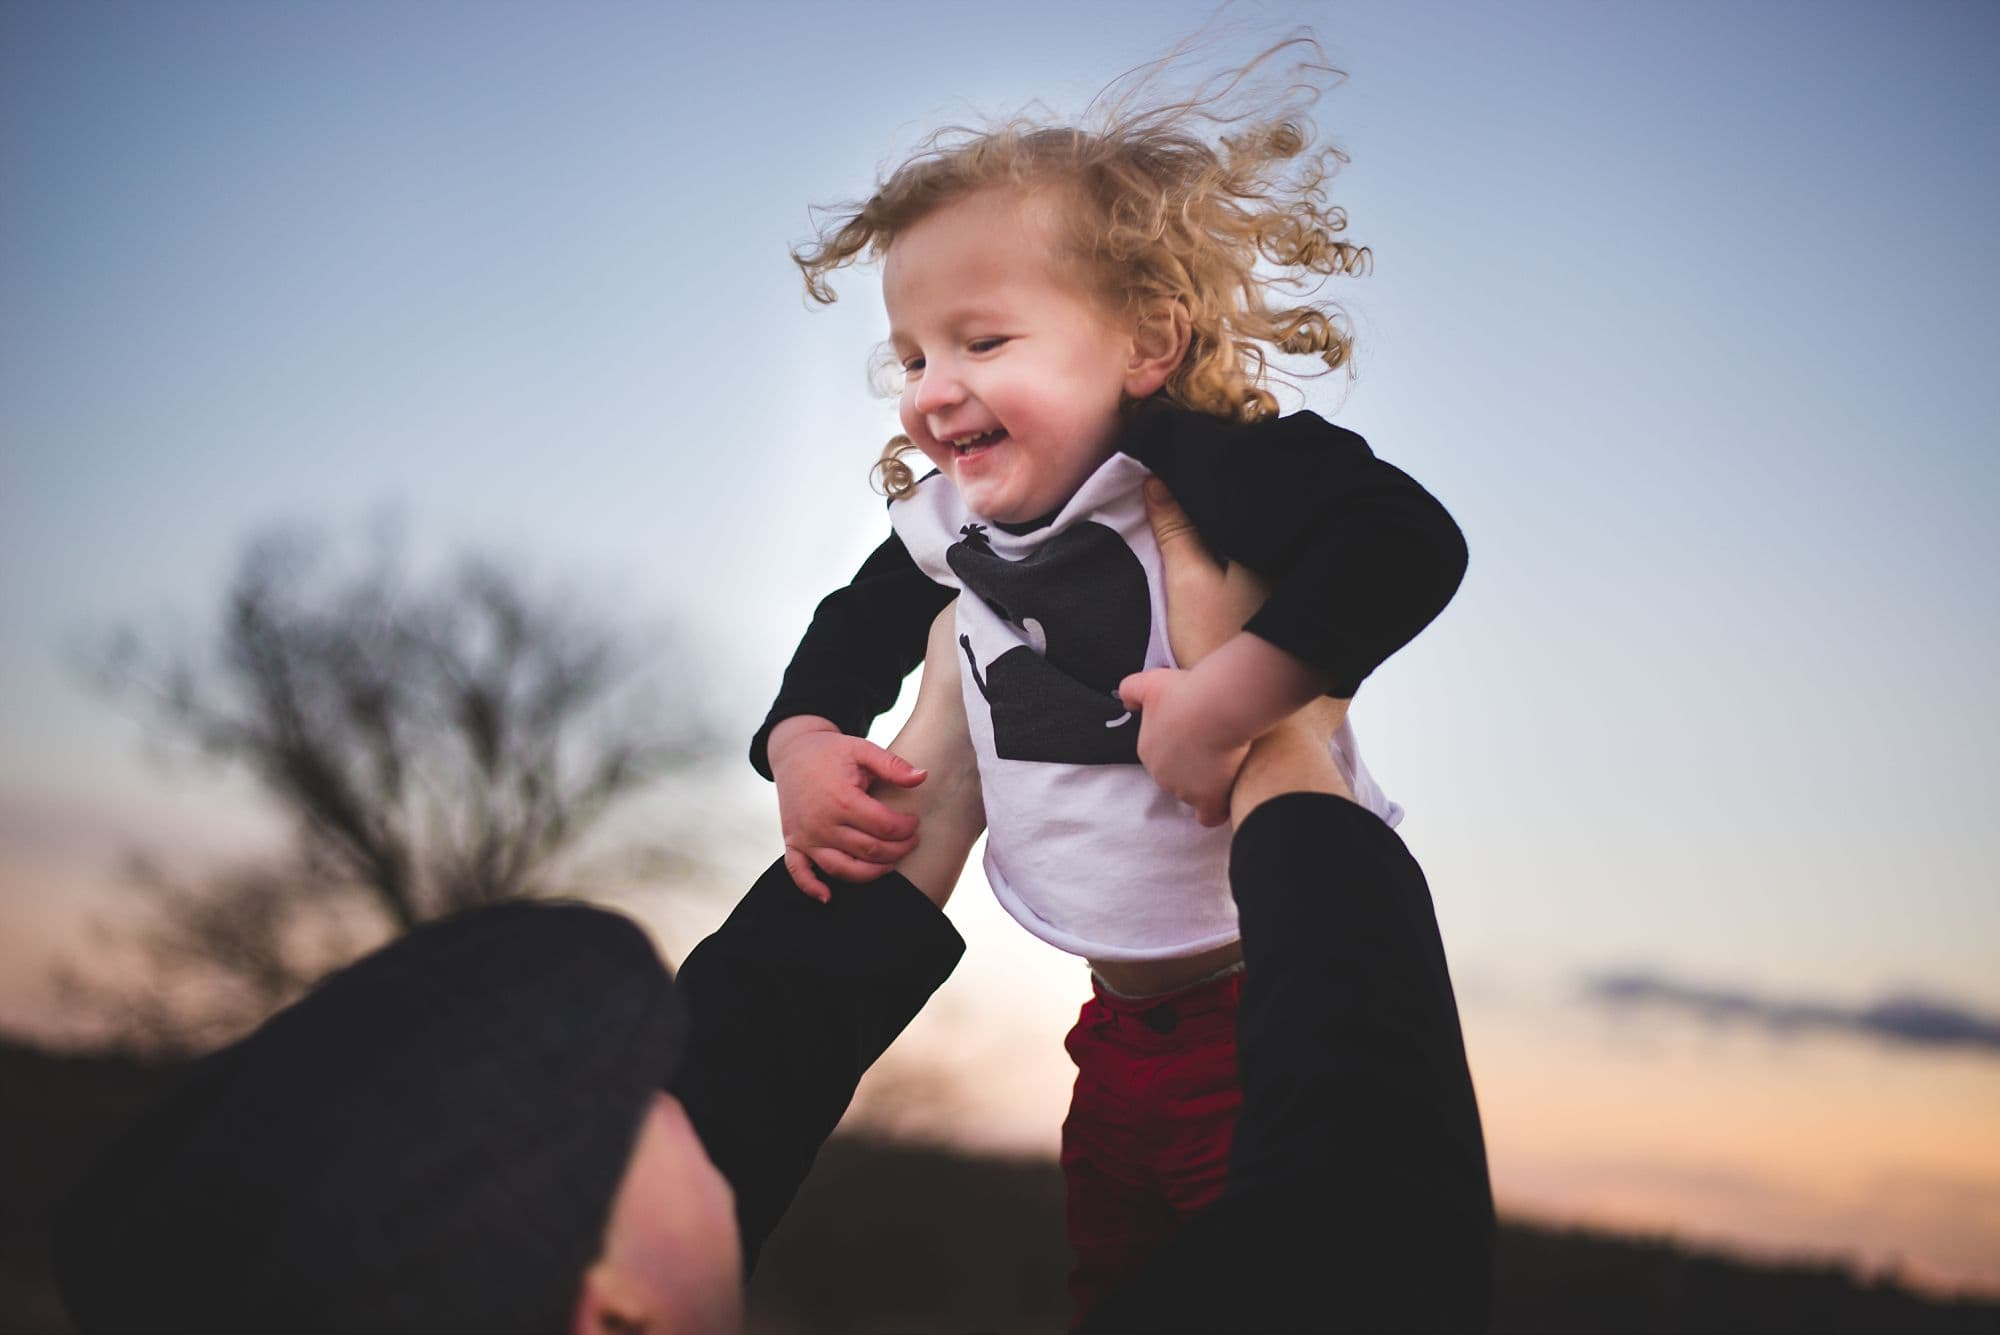 Toddler with long curly hair laughs as he is tossed into the air at twilight